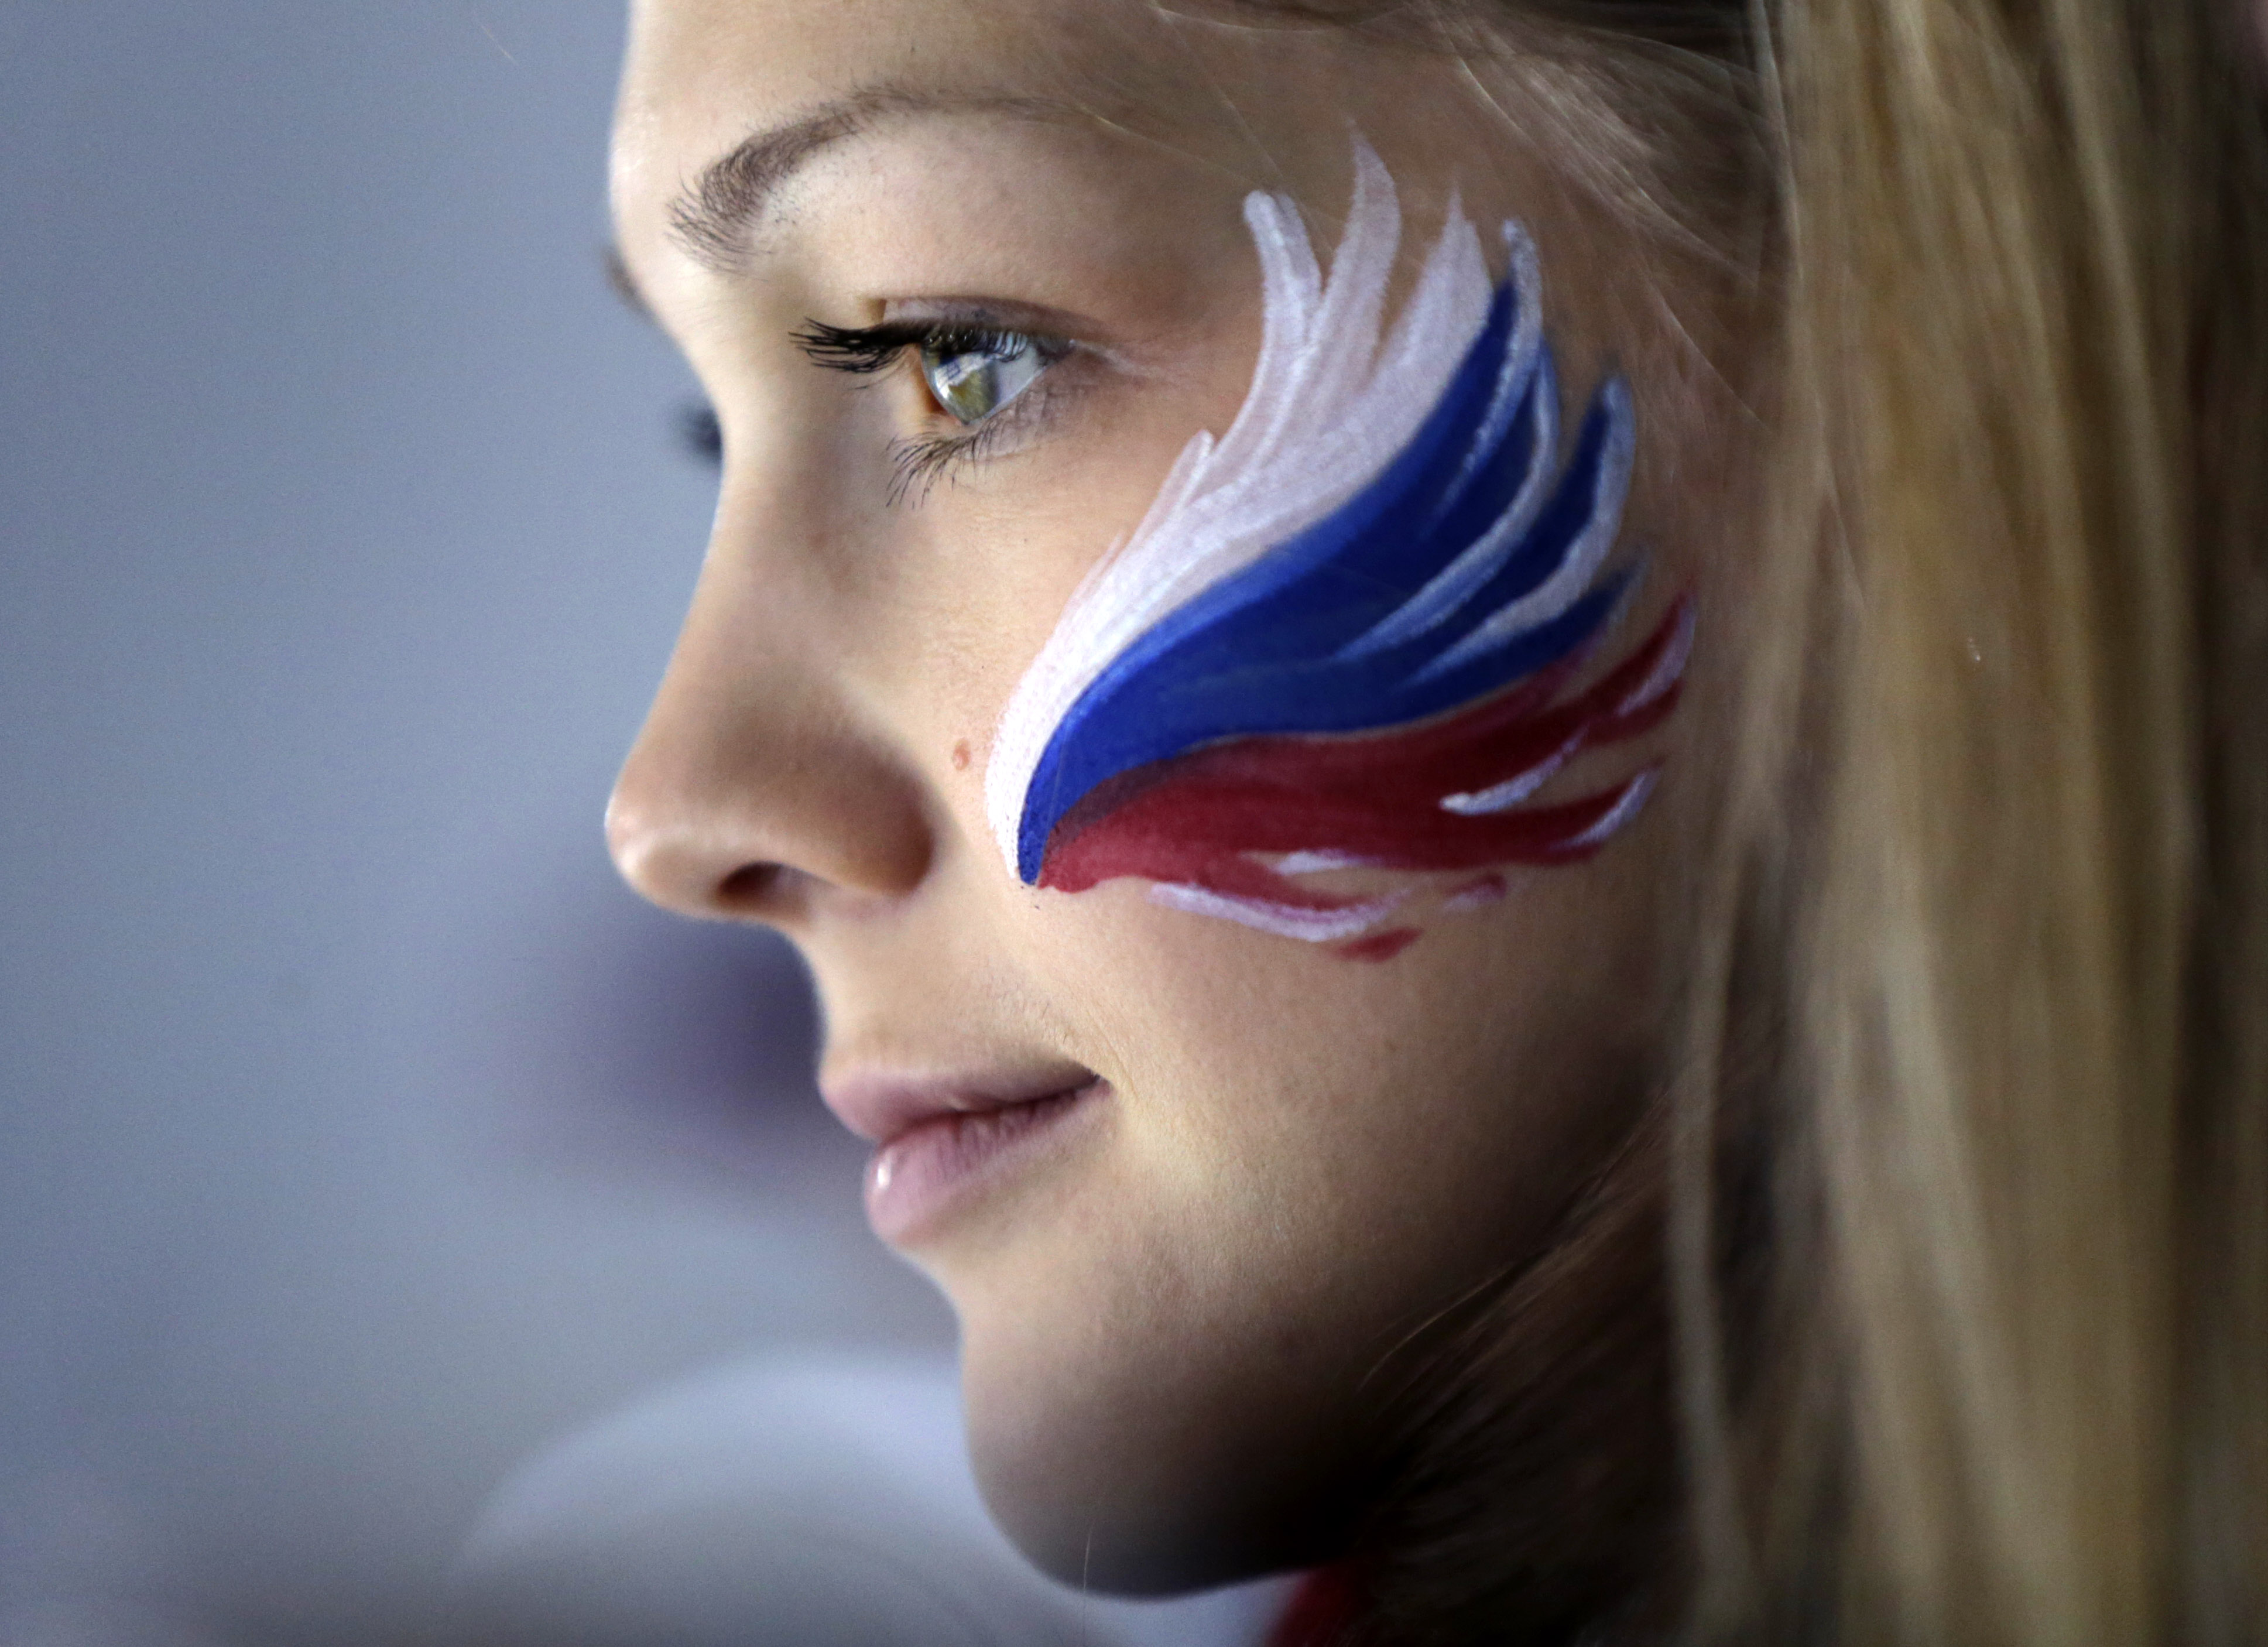 A Russian fan wears face paint while attending a men's curling competition.